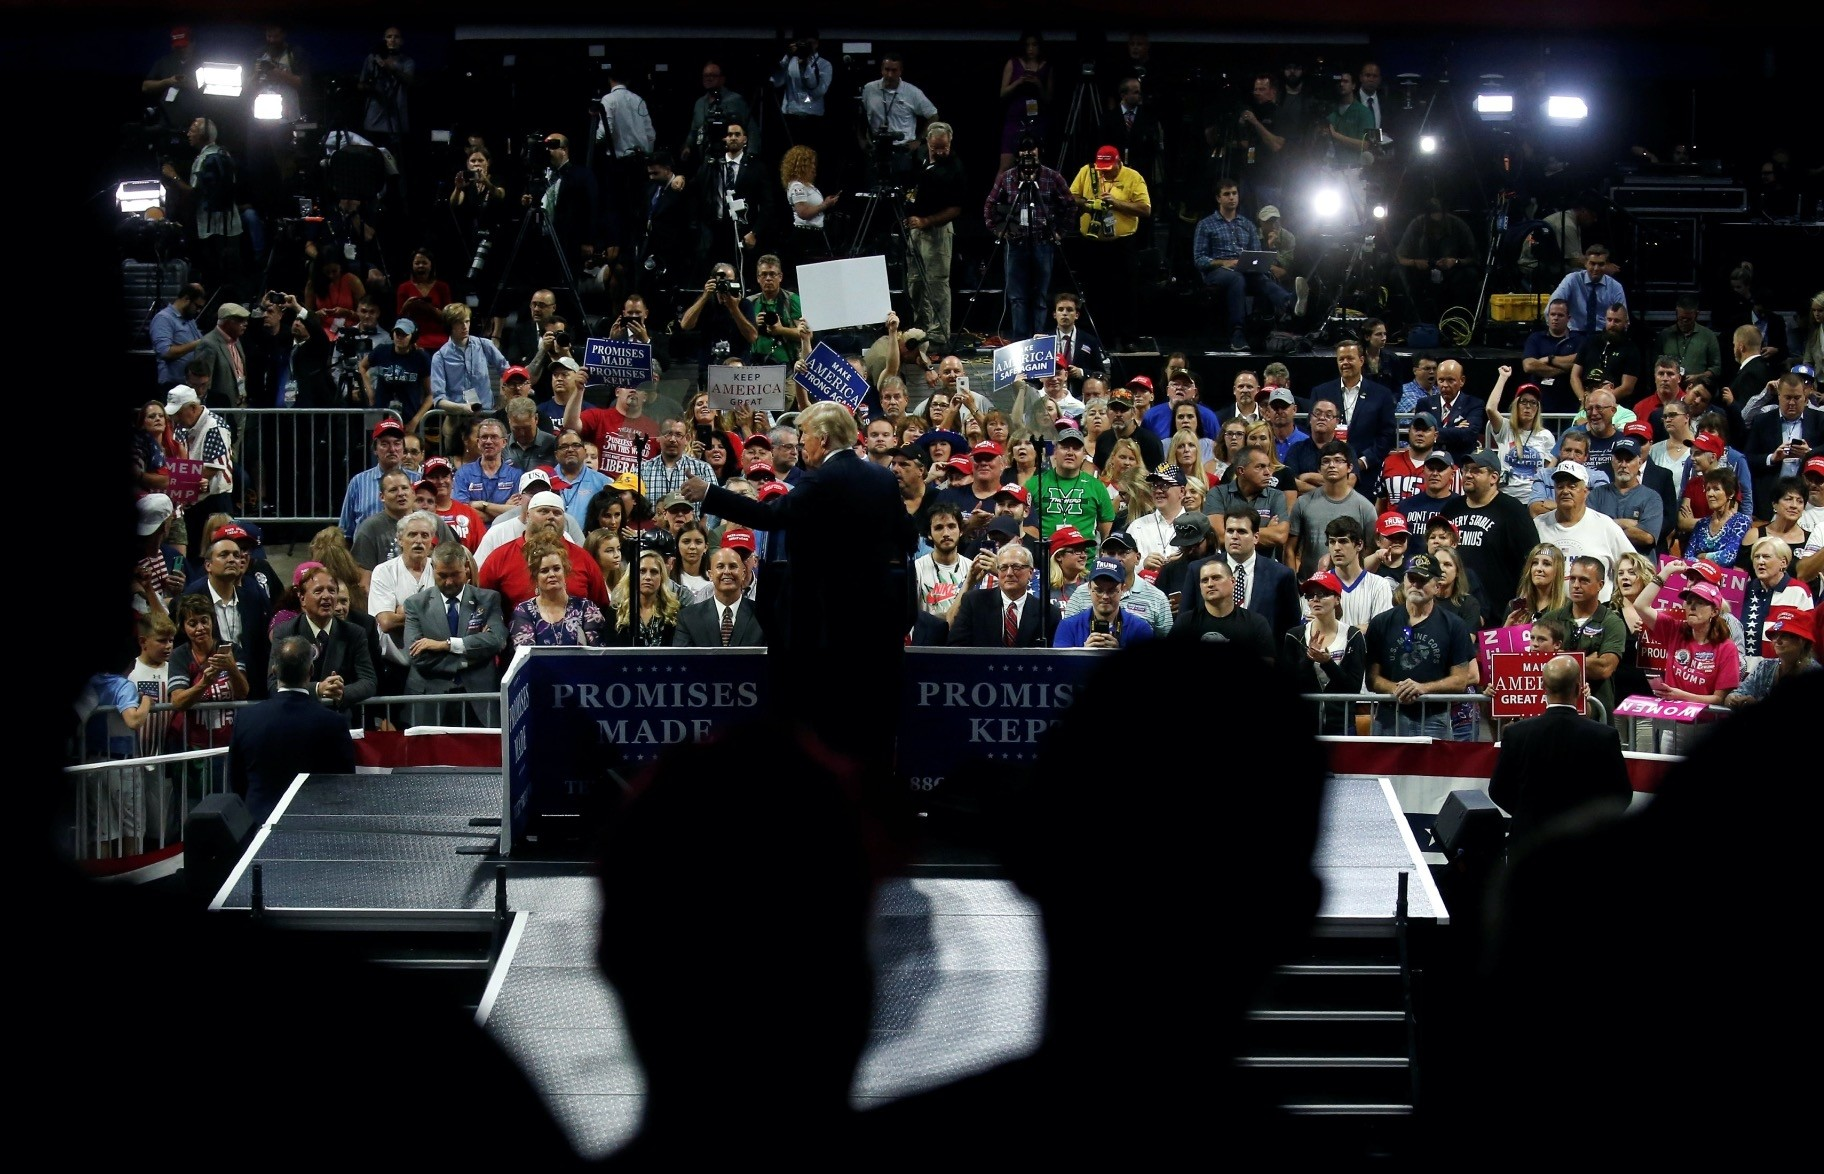 U.S. President Donald Trump speaks at a ,Make America Great Again, rally at the Civic Center in Charleston, West Virginia, Aug. 21.